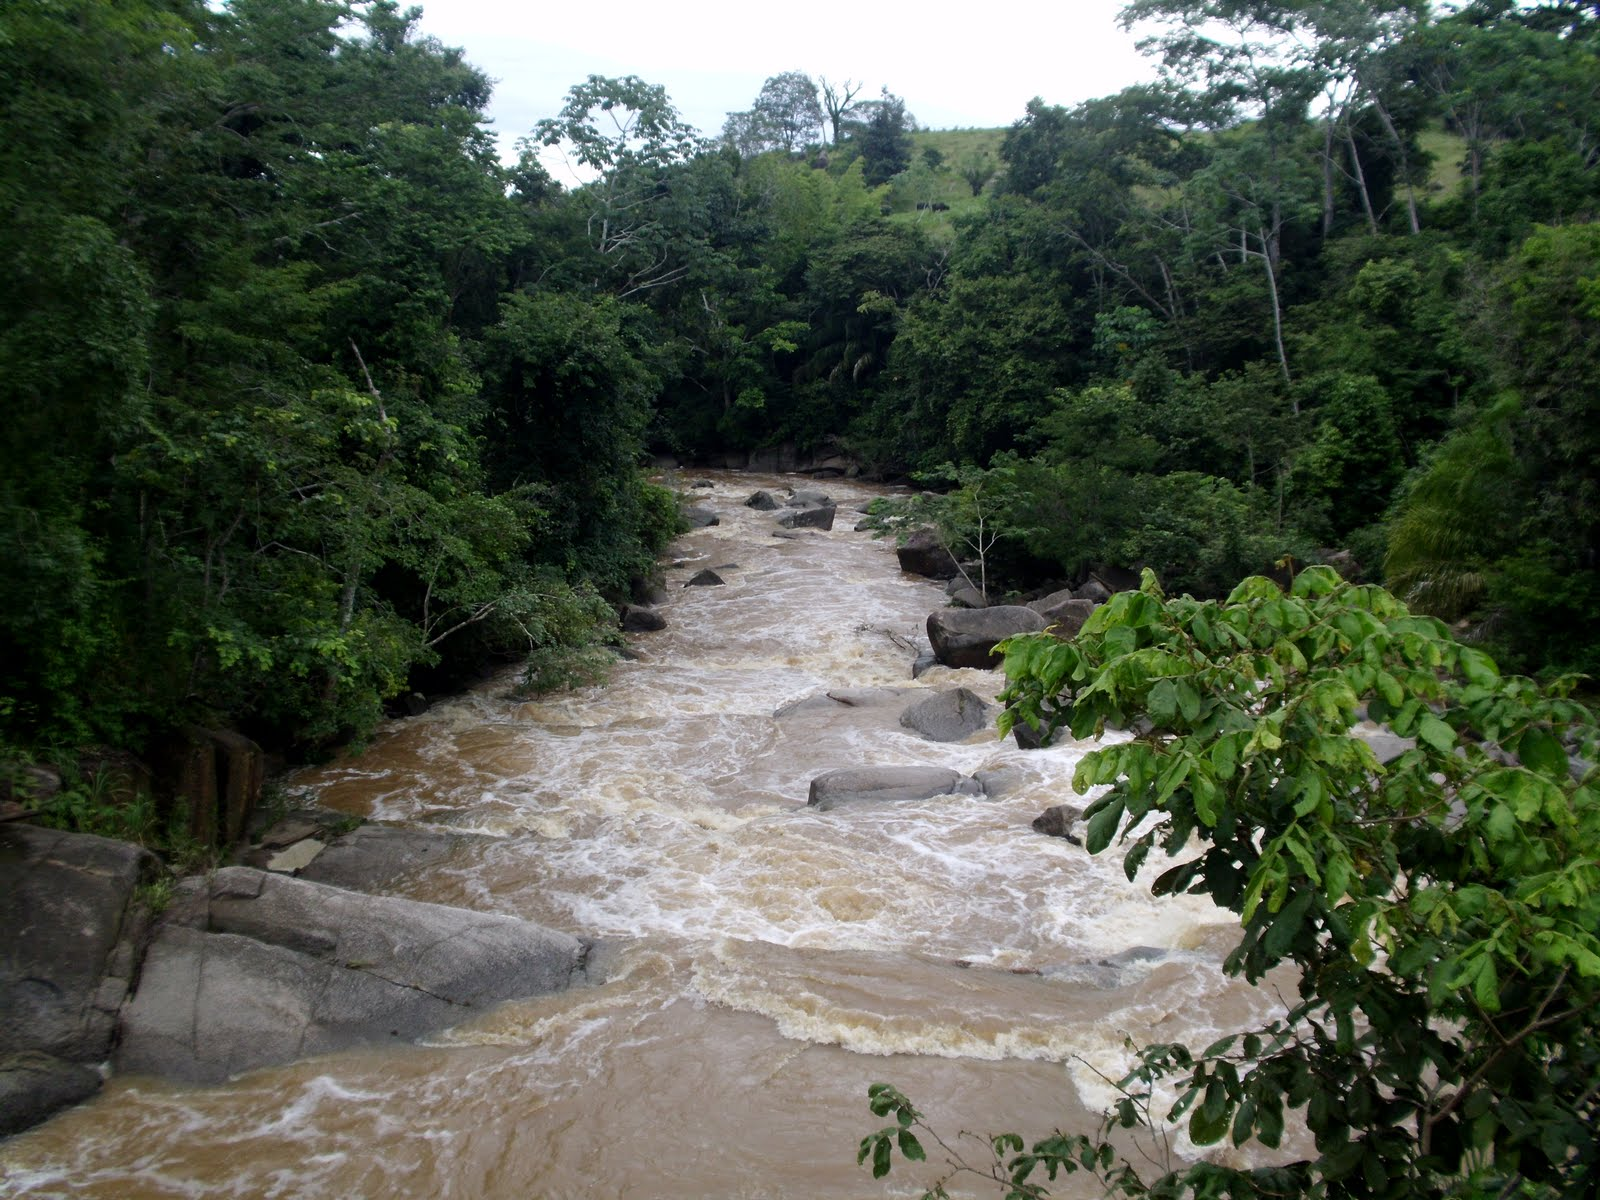 RIO ENGANADO - COLORADO DO OESTE